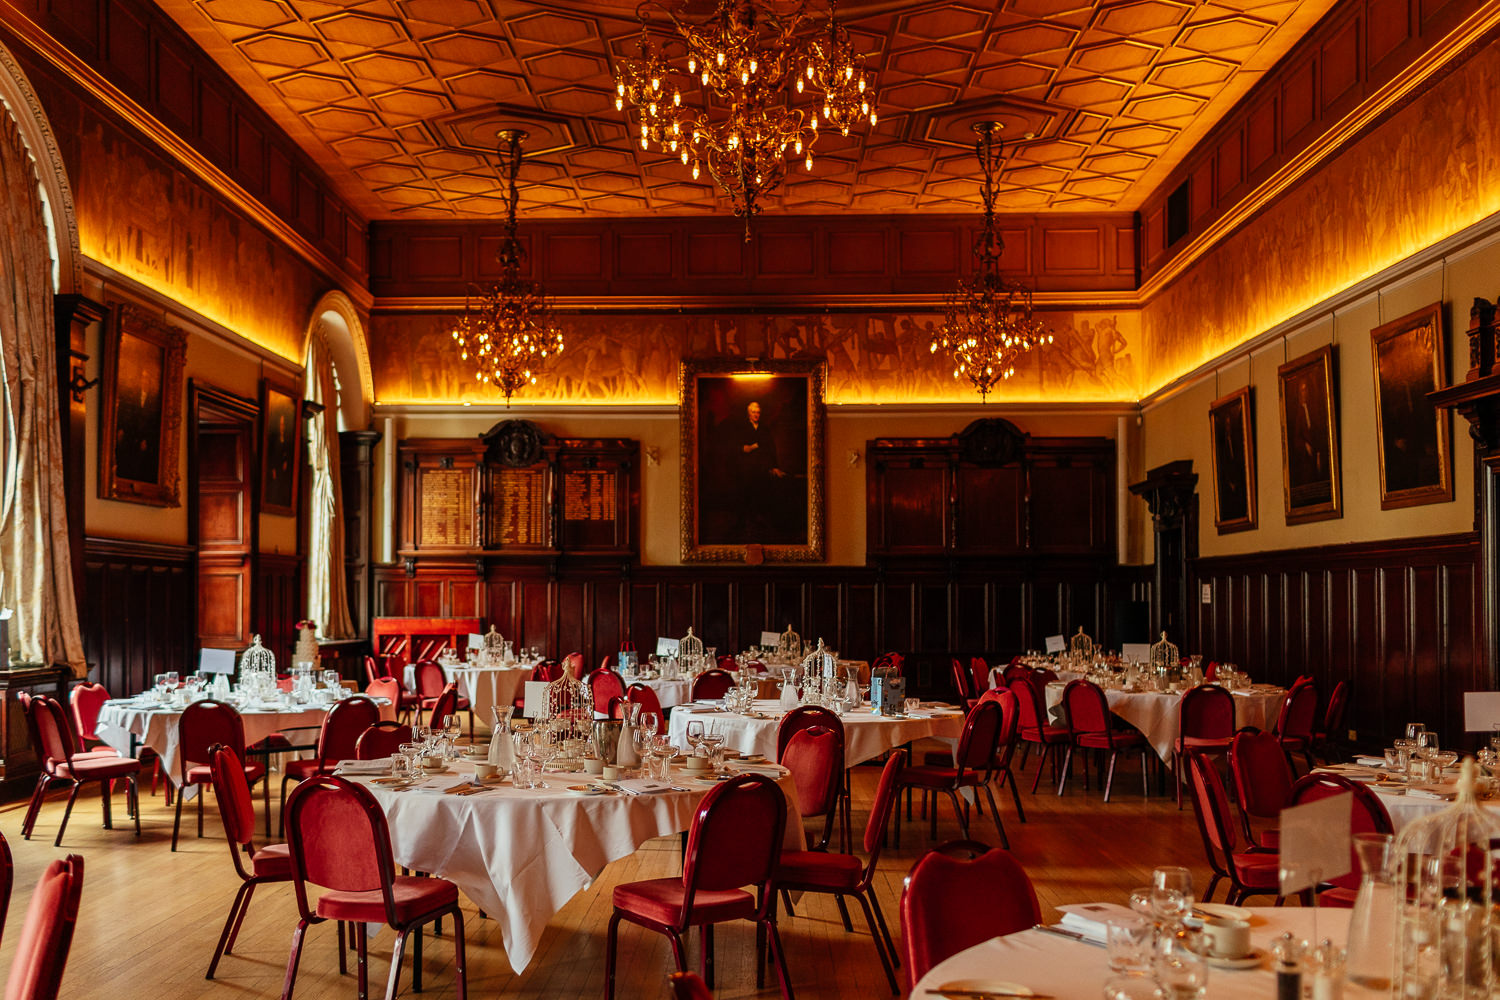 trades hall wedding reception glasgow interior inside dinner setup decor